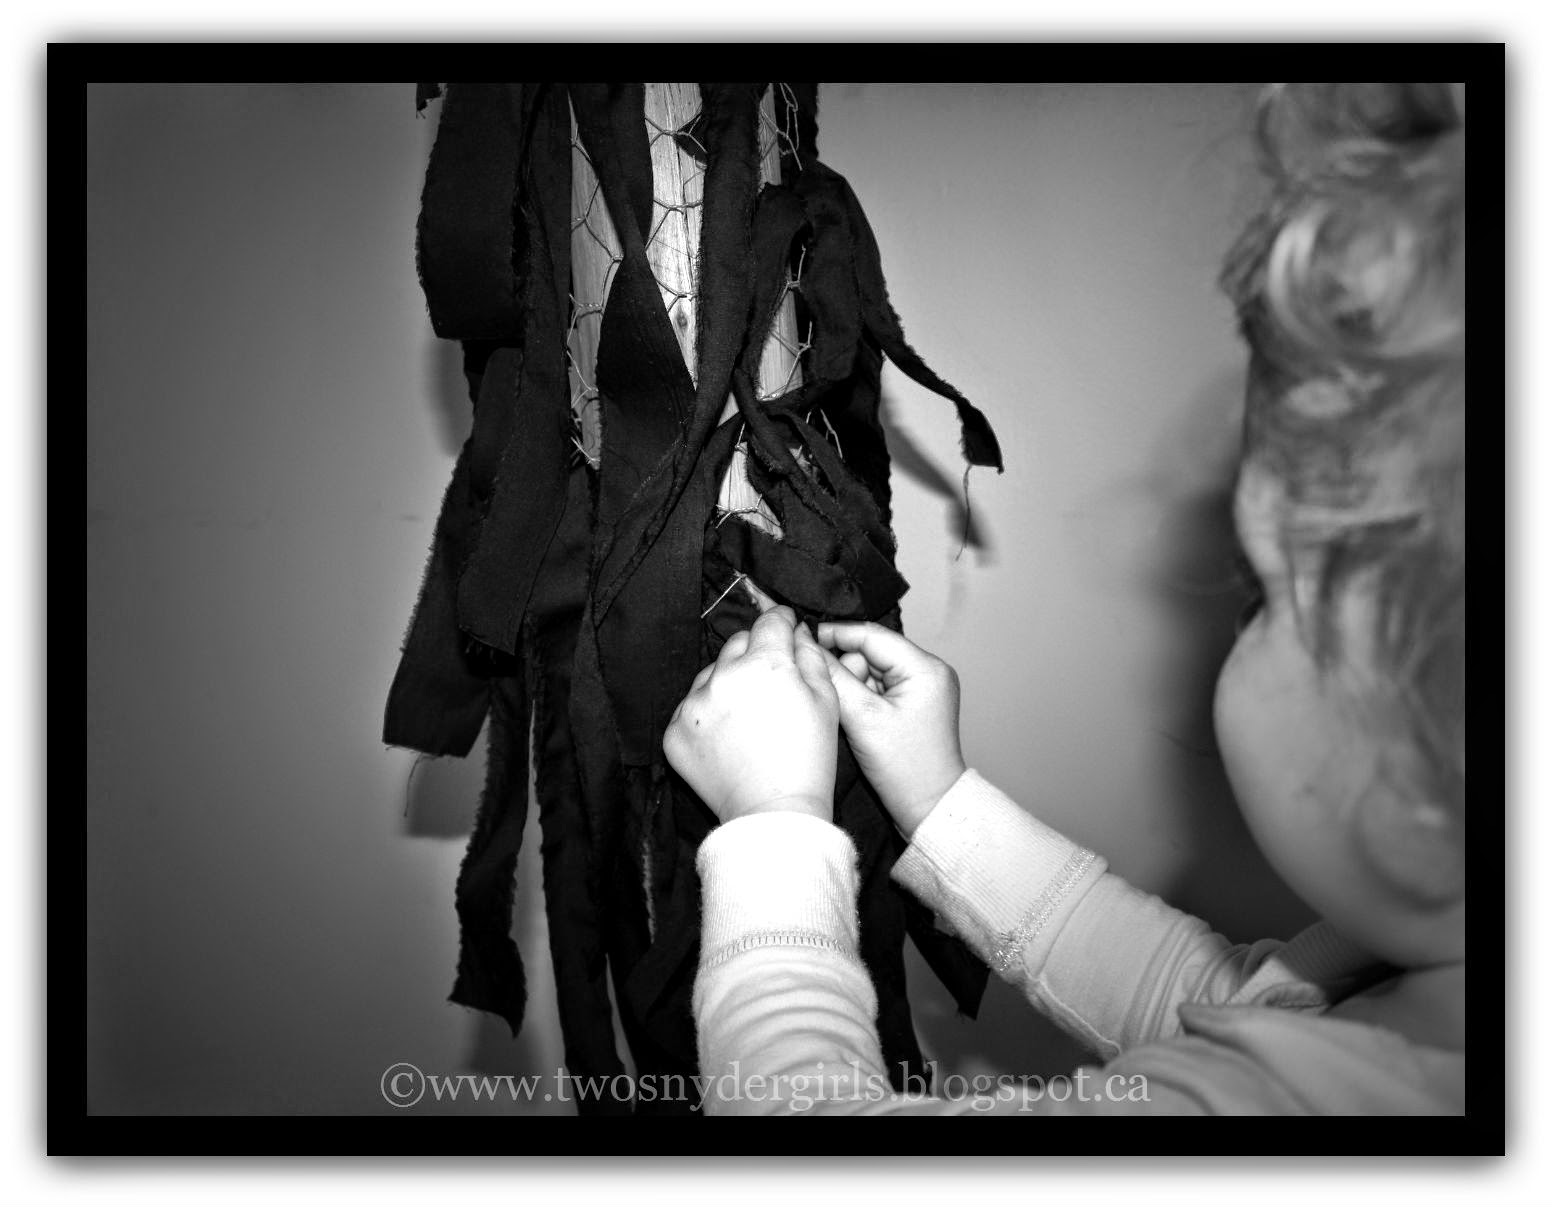 A child placing black cloth on the cross